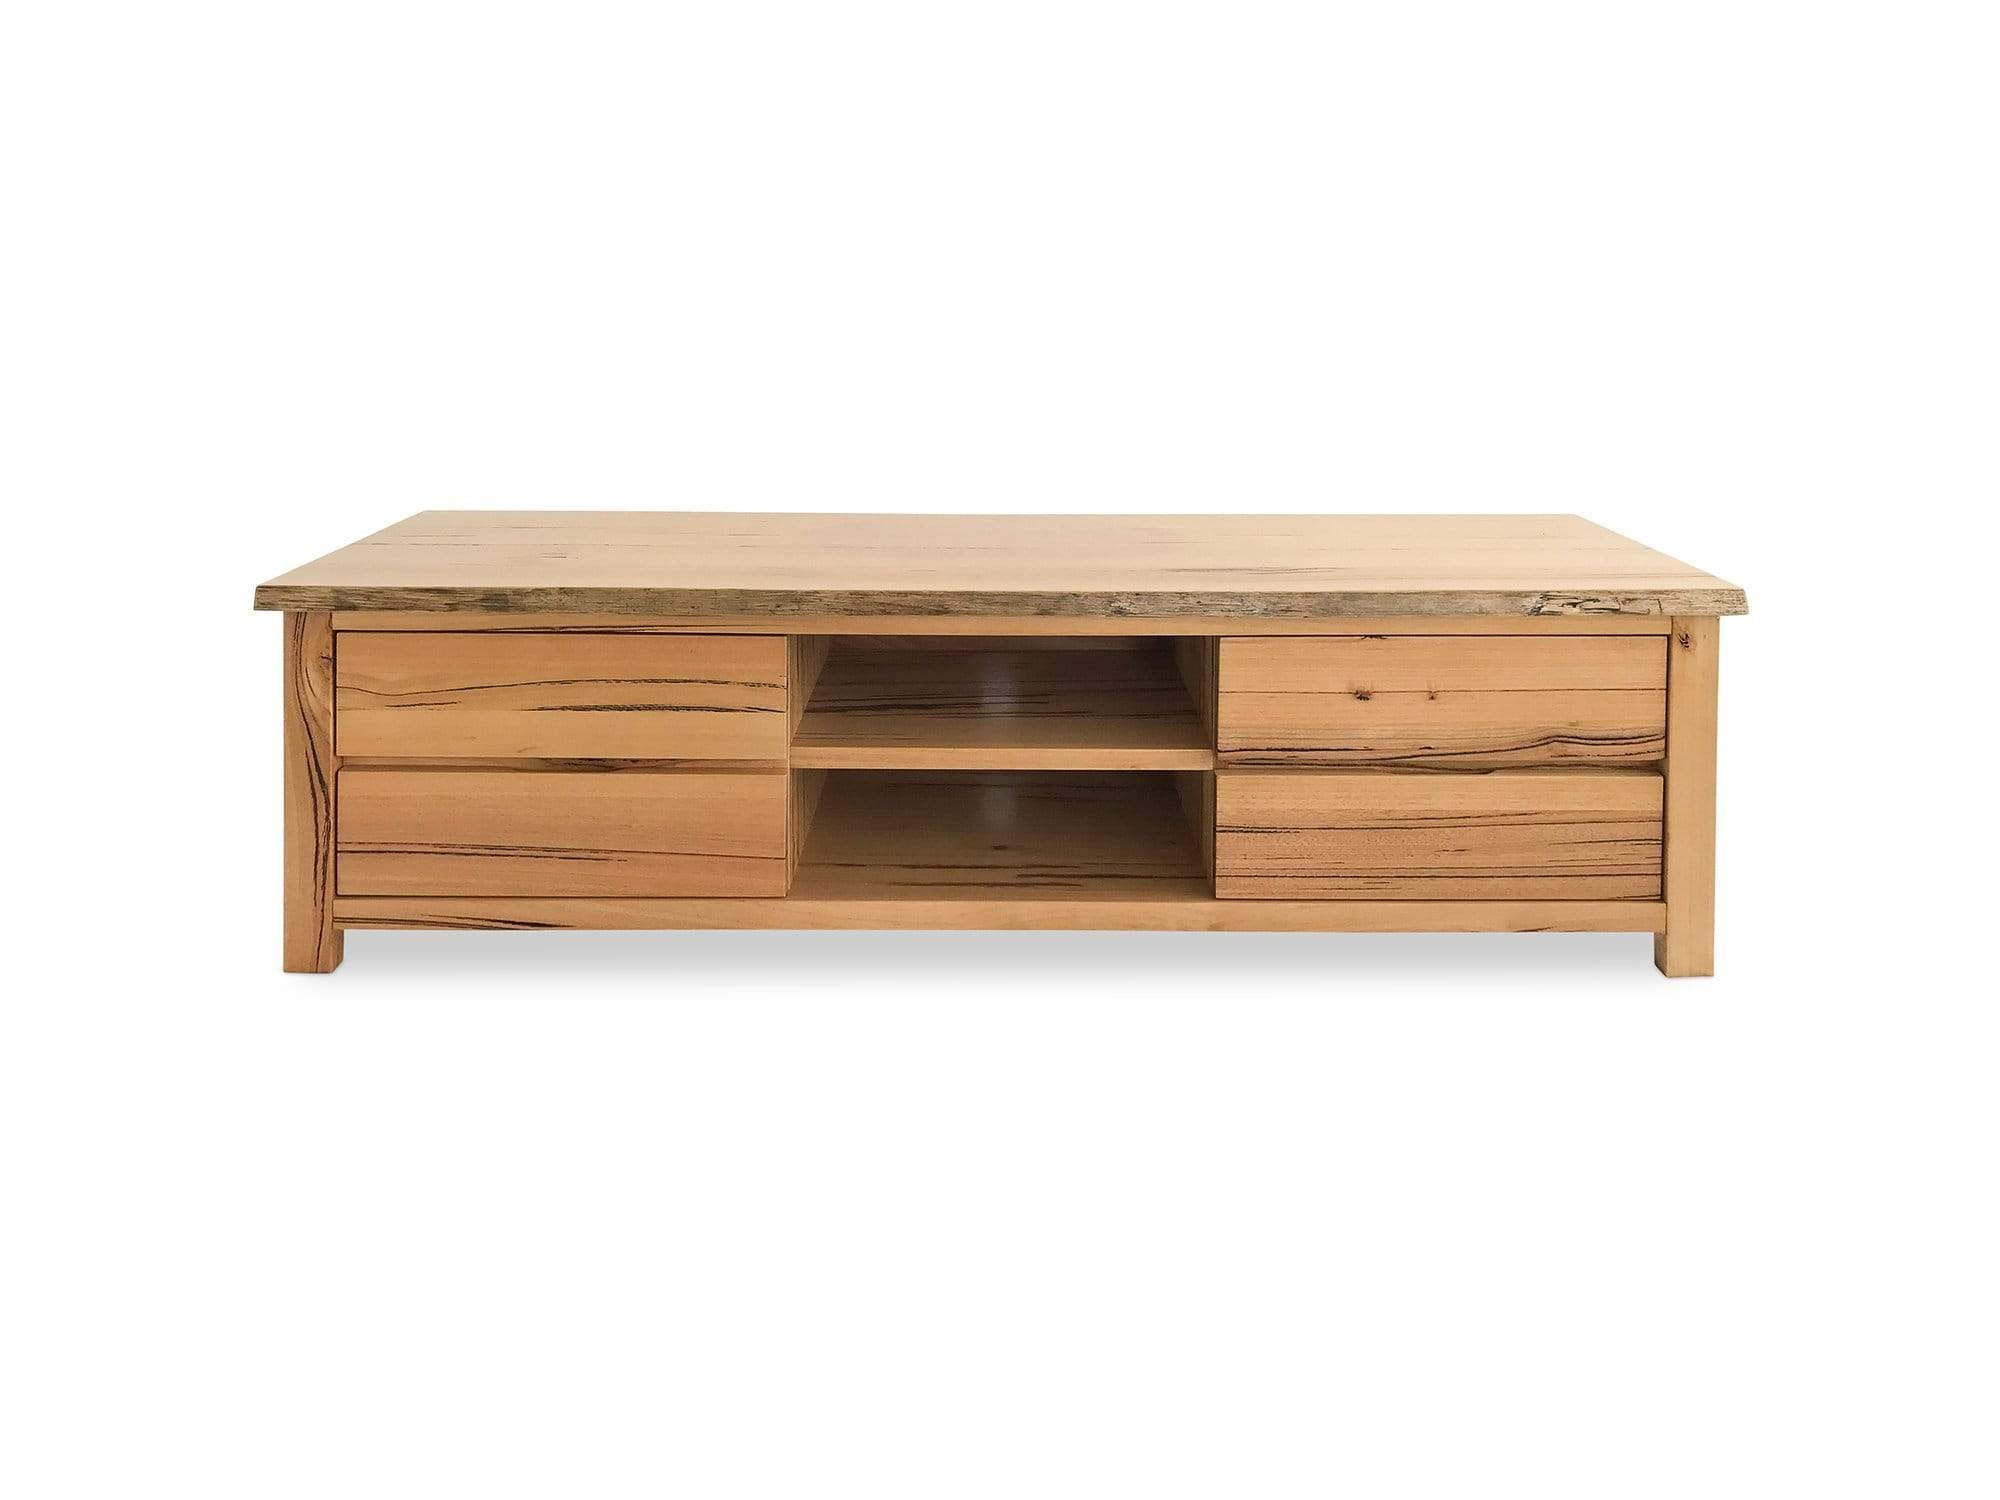 Stringy Bark Messmate Timber TV unit with Drawers